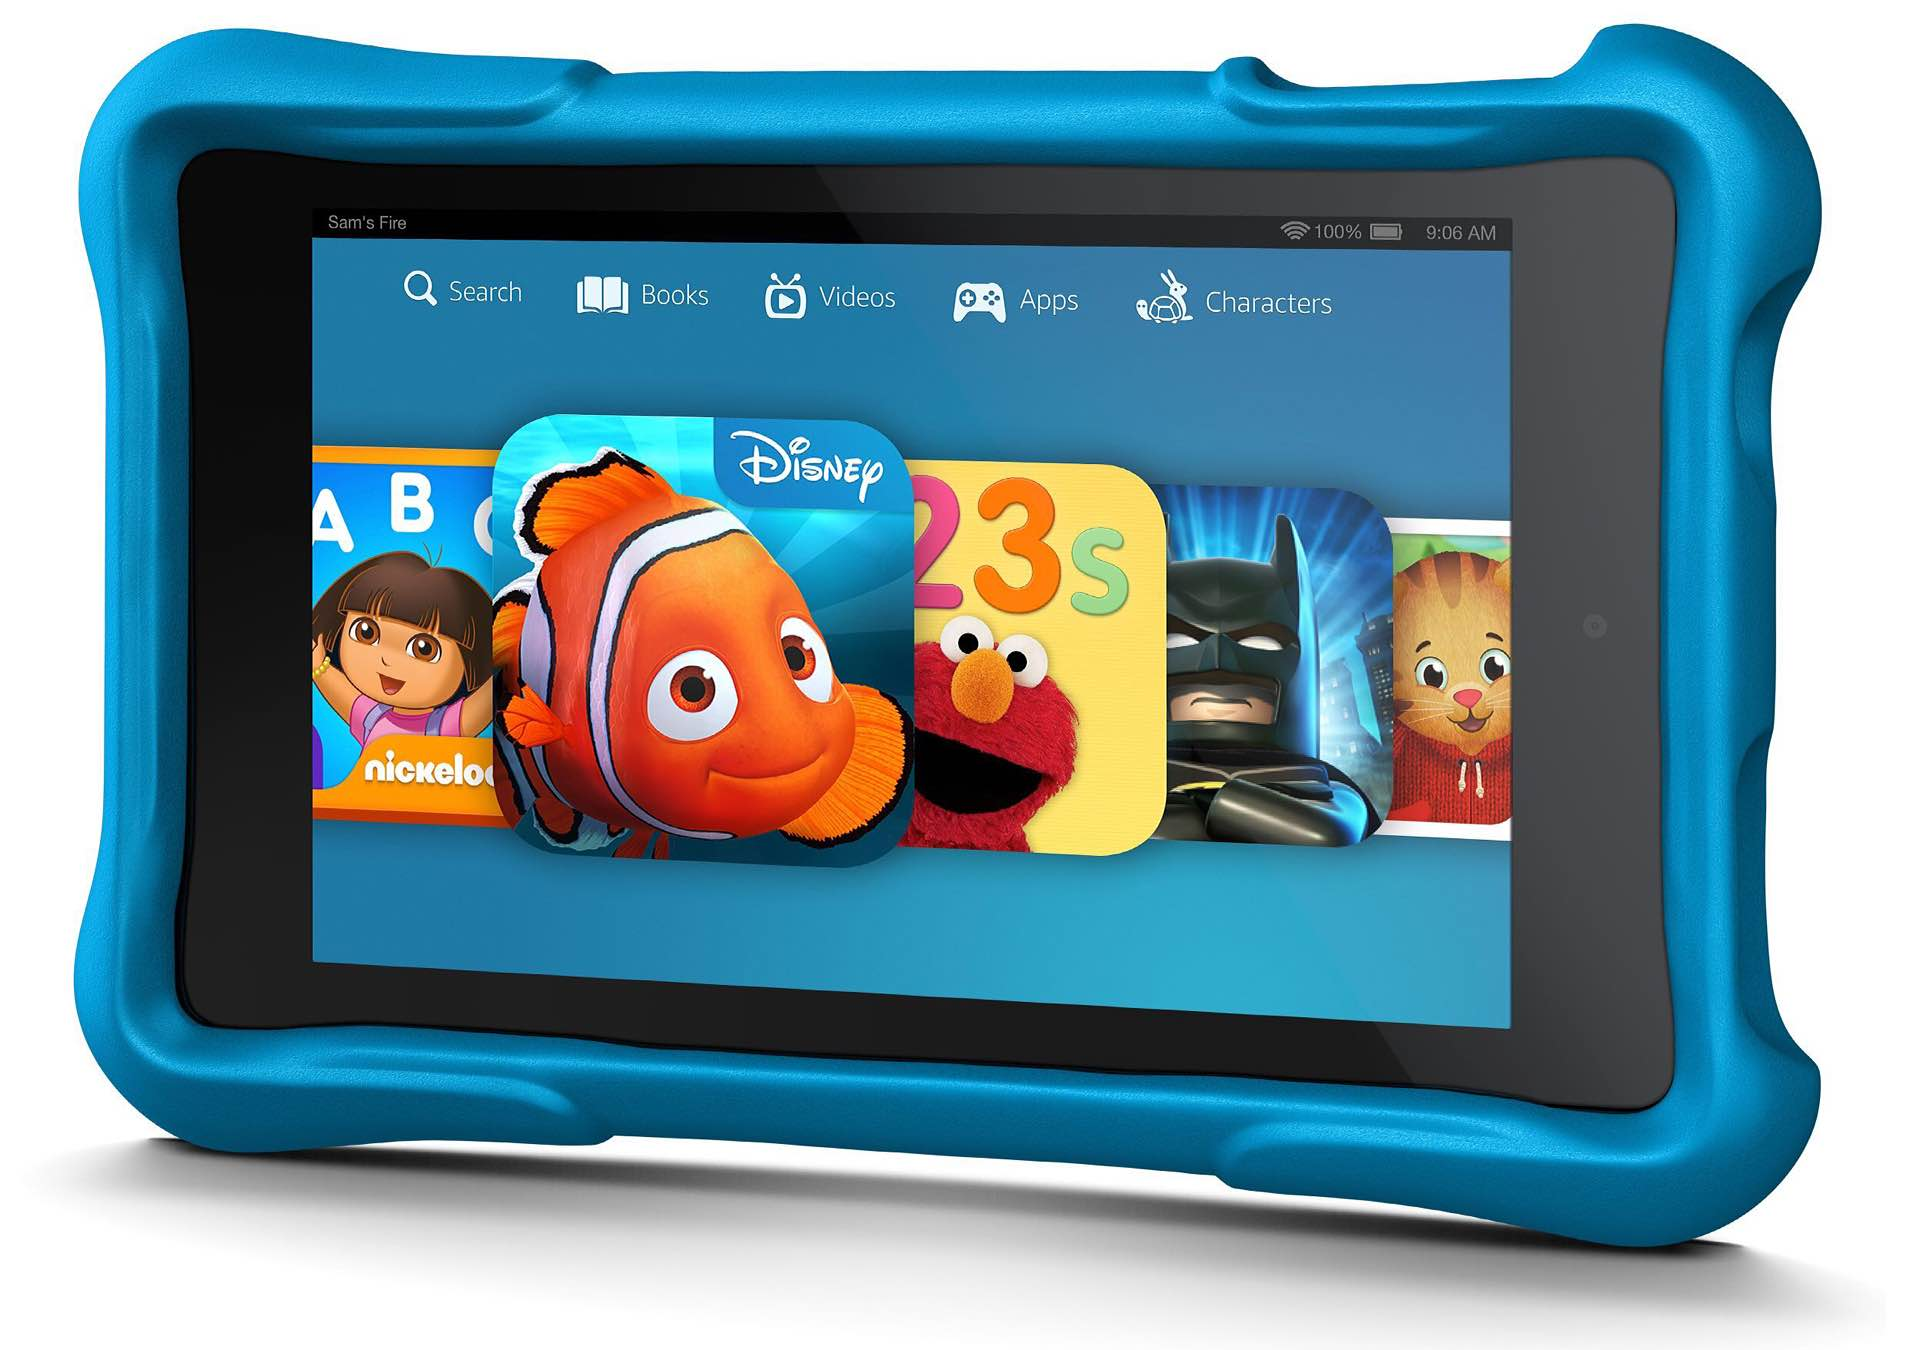 Amazon's kids edition Kindle Fire tablet. ($100 for 16GB version; comes in blue, green, and pink)